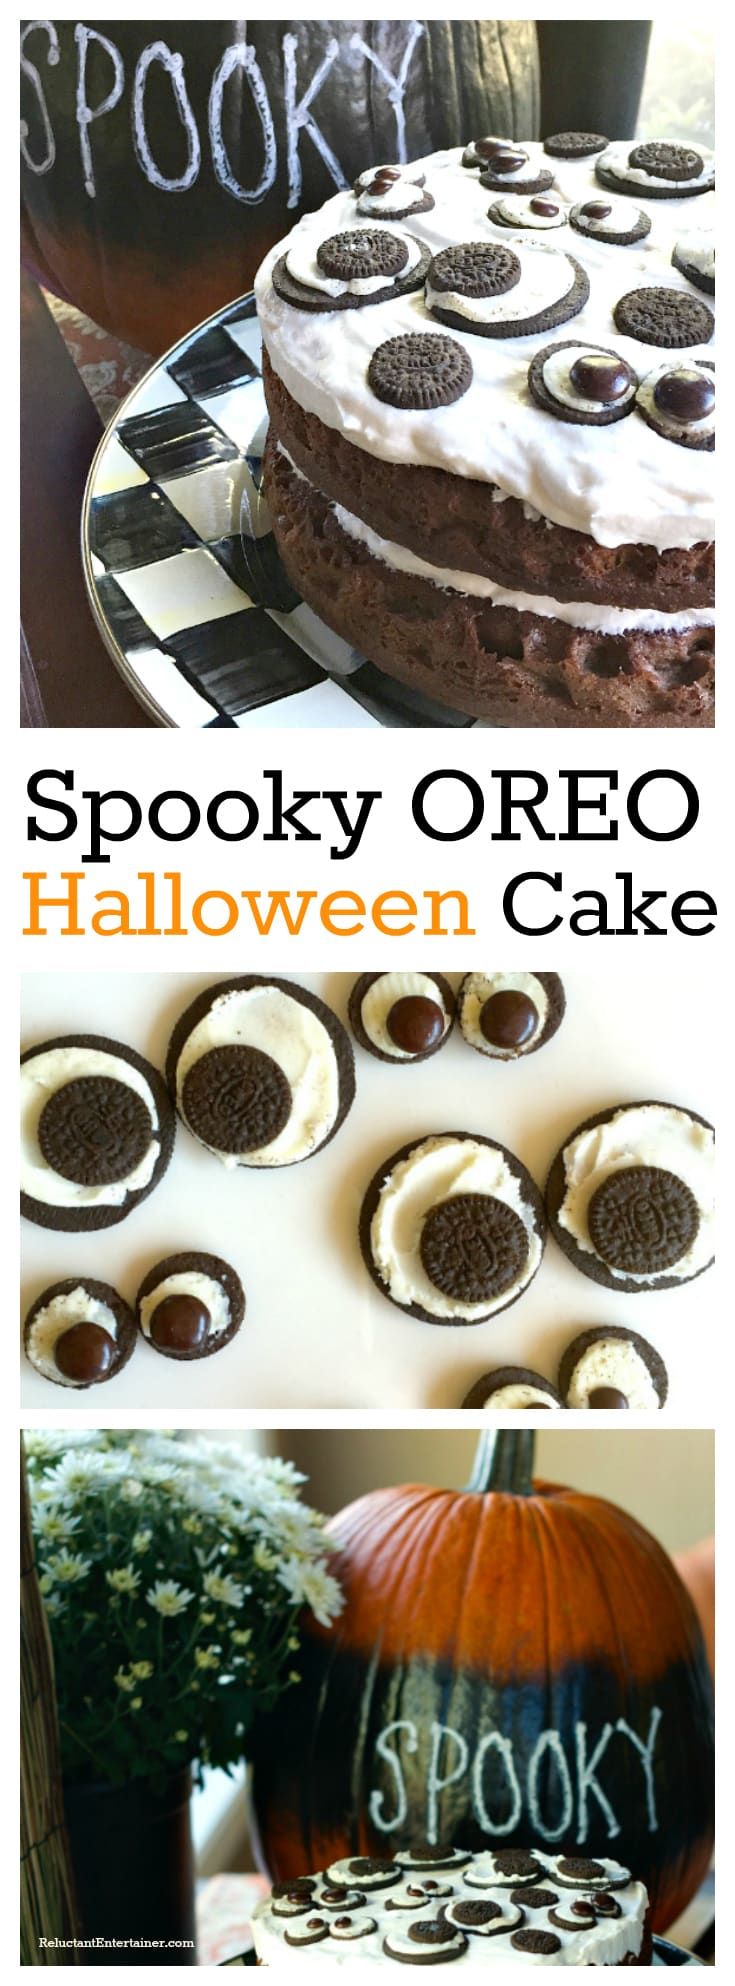 Spooky Oreo Halloween Cake at ReluctantEntertainer.com